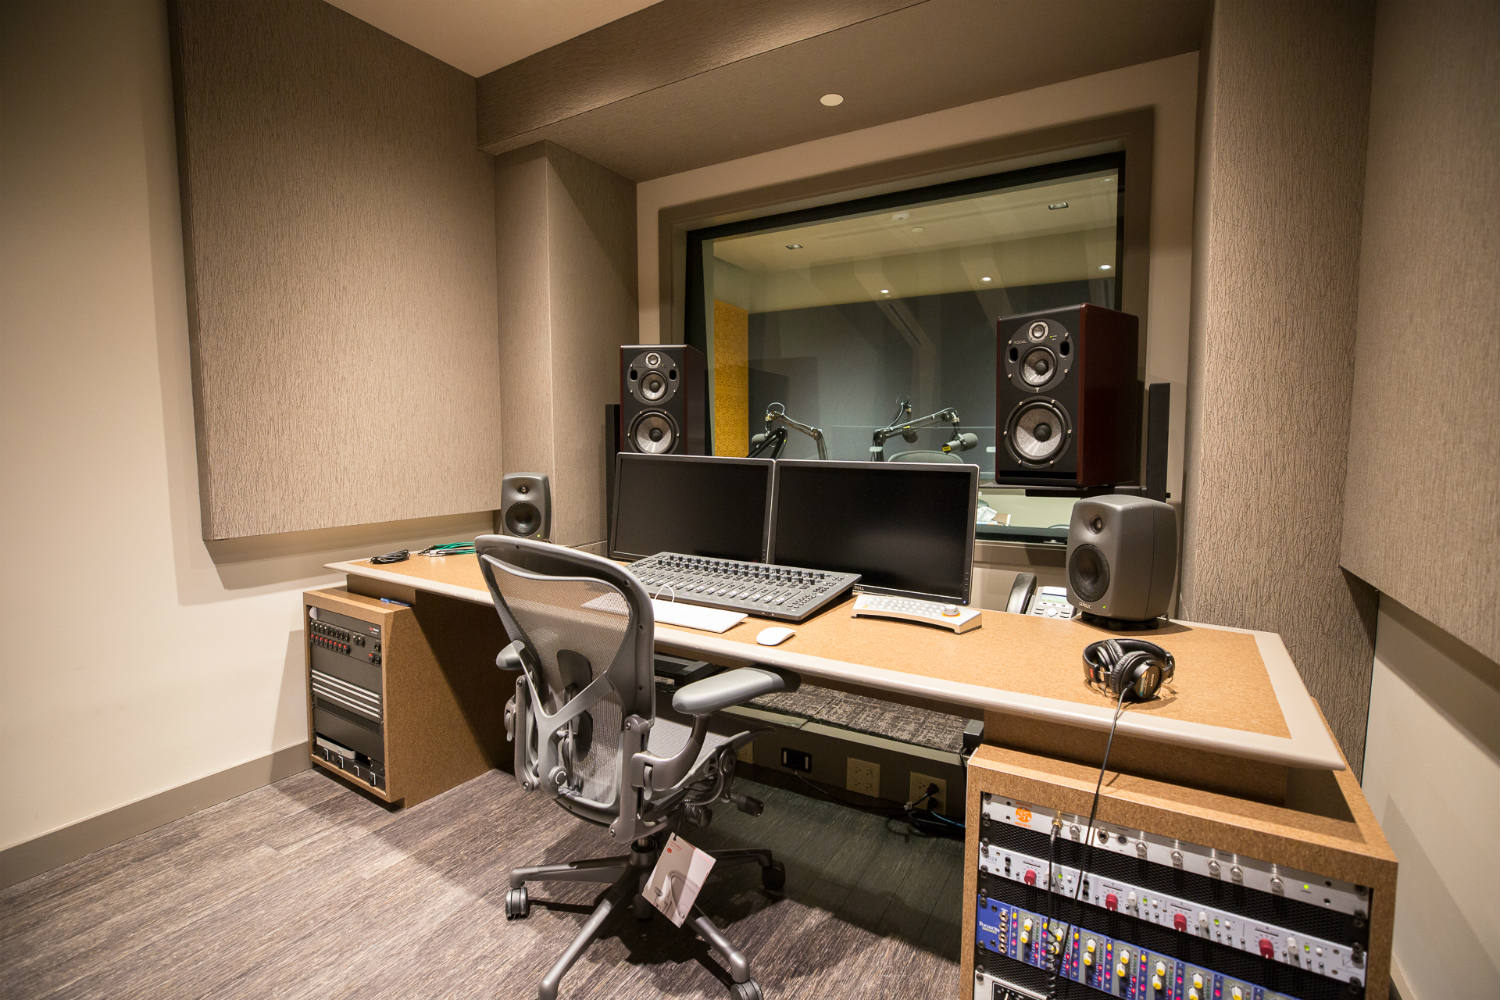 Audible is the world's largest producer/distributor of downloadable audiobooks and other spoken-word entertainment. WSDG was commissioned to design their new state-of-the-art recording studio complex. Control Room B